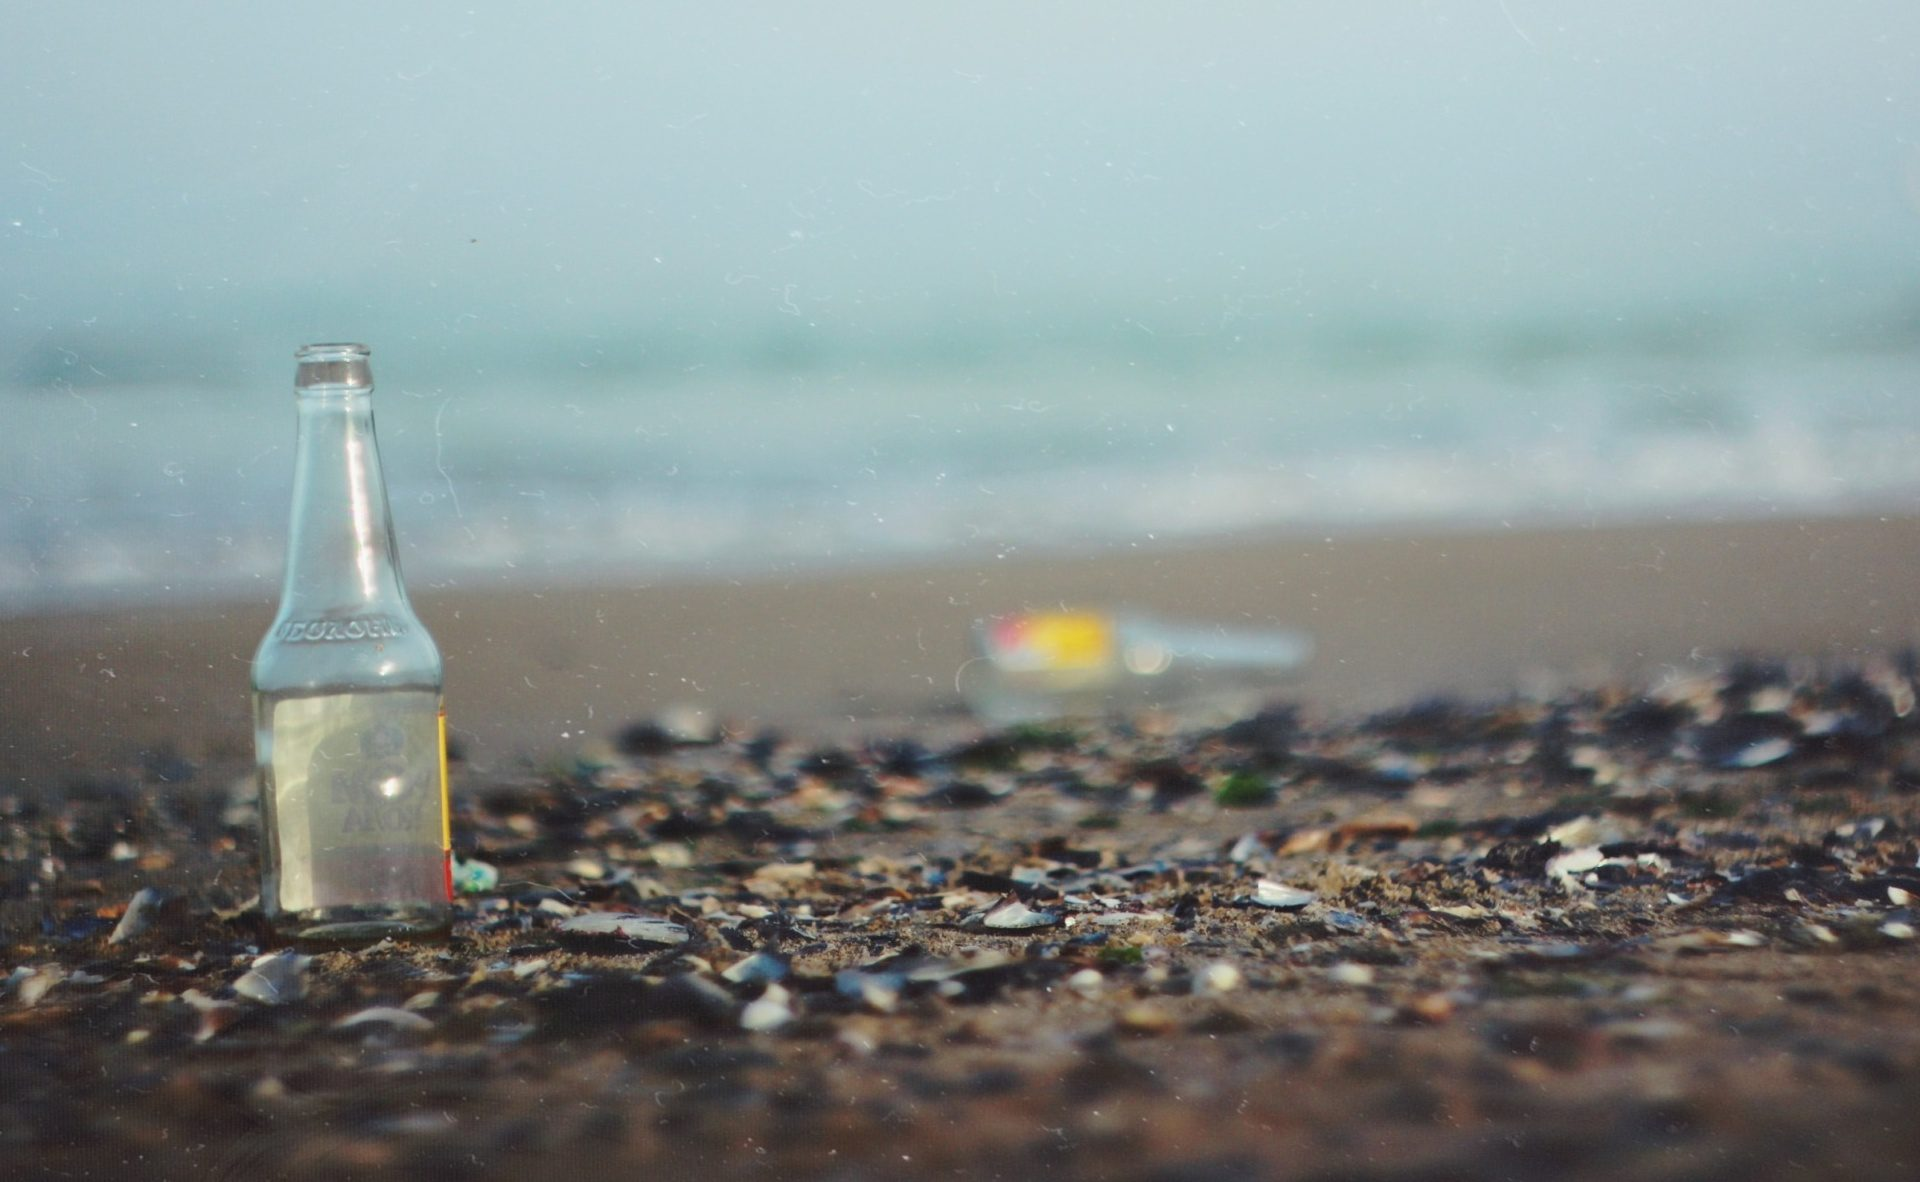 glass littered on the beach on a gloomy day